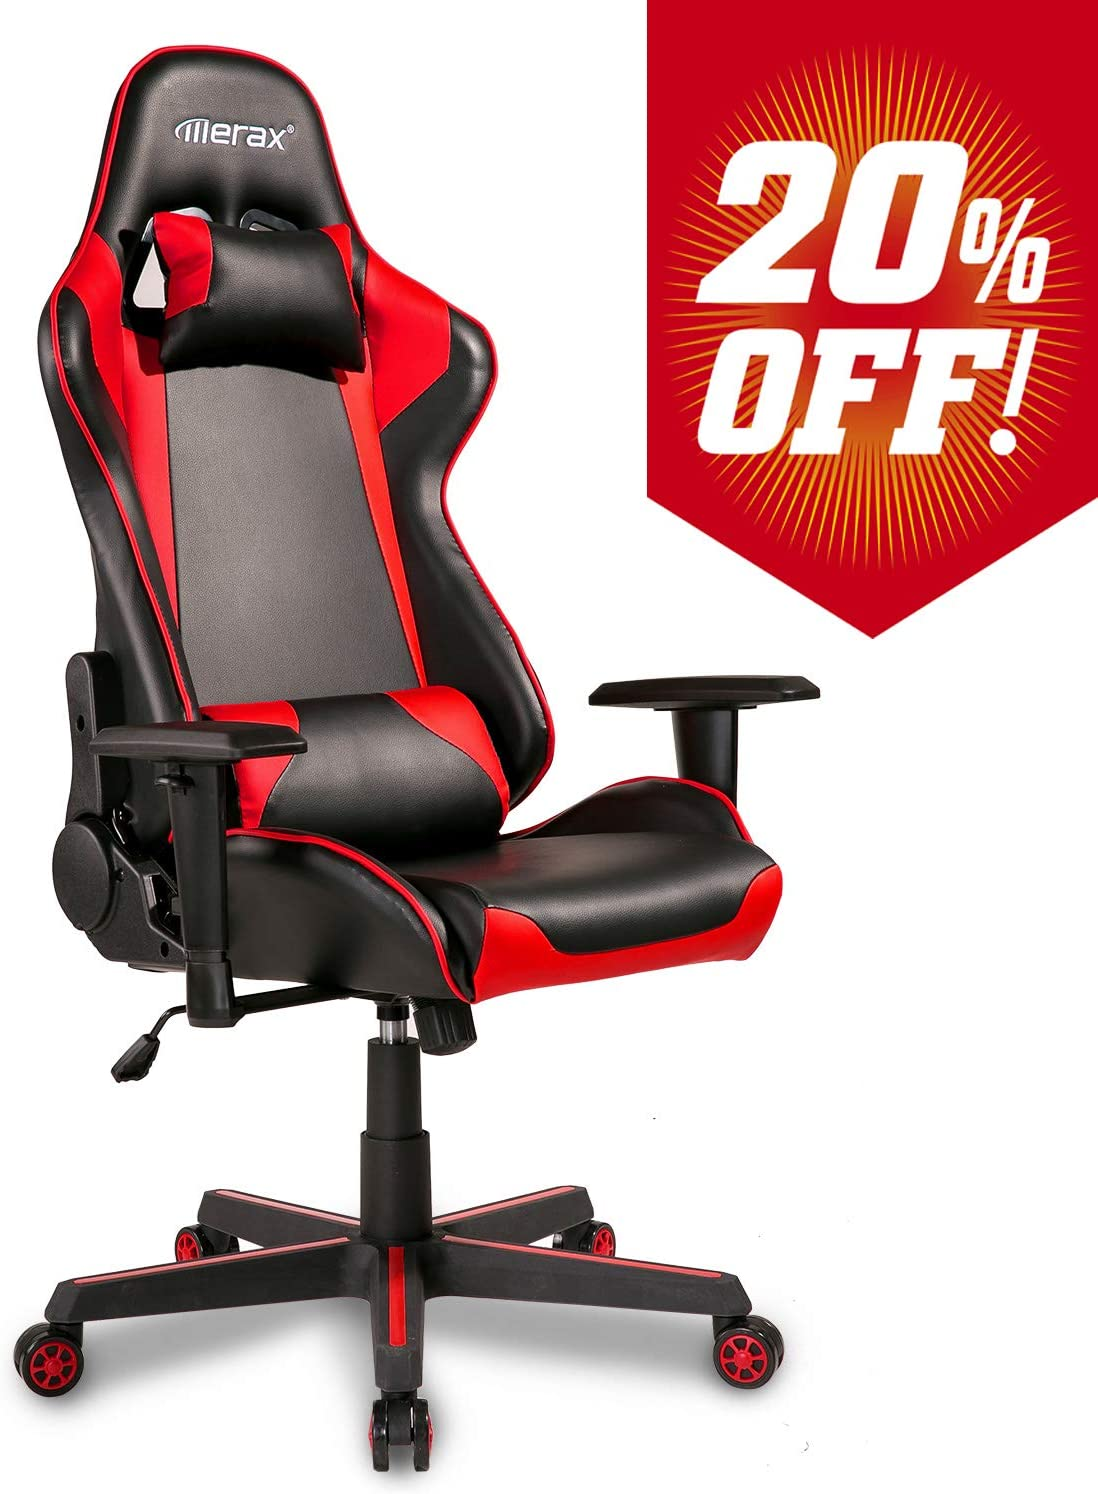 Merax Gaming Chair Computer Game Desk Chair Racing Style Comfy Office Chair Ergonomic Design for Teens Adult Kids